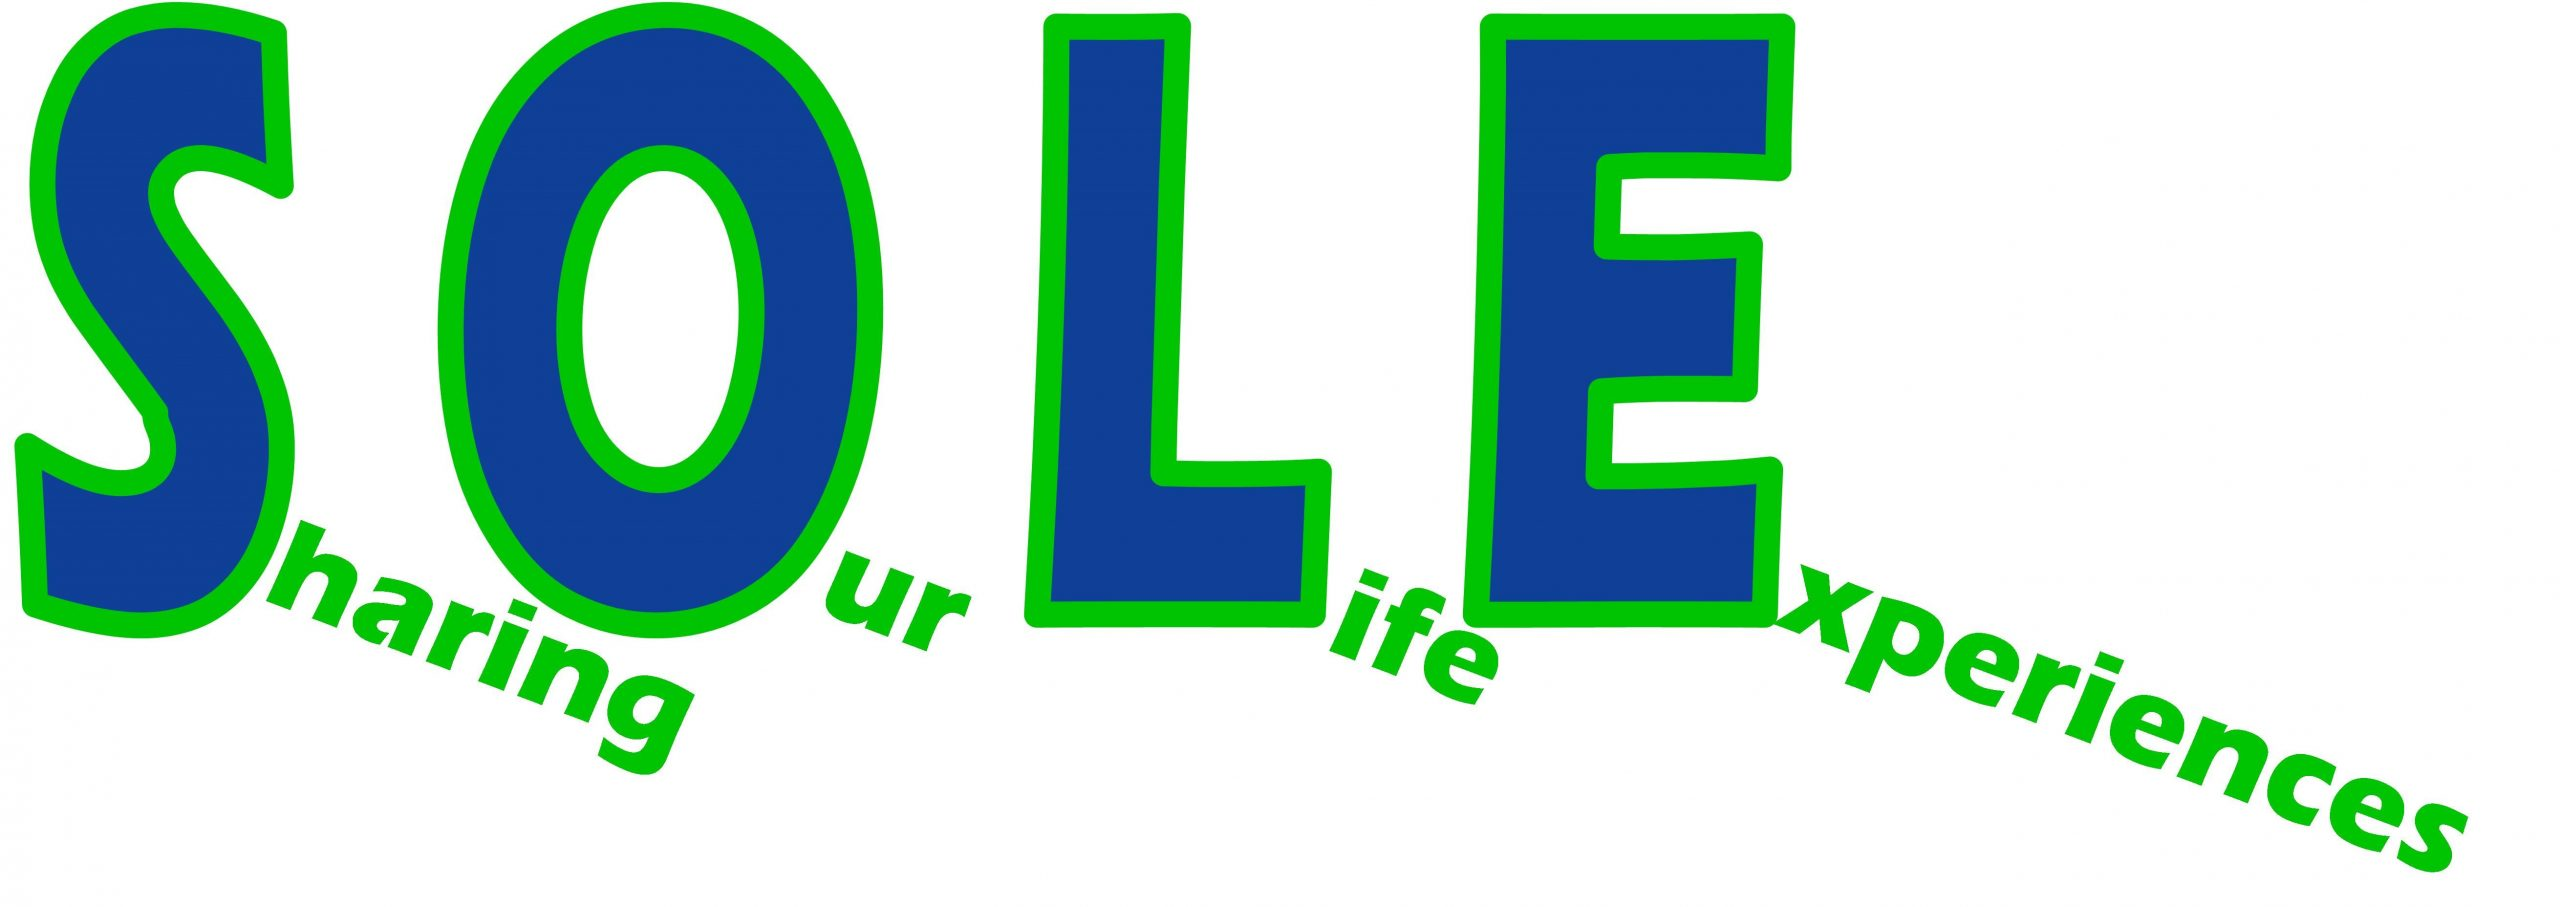 Share Our Life Experience Logo